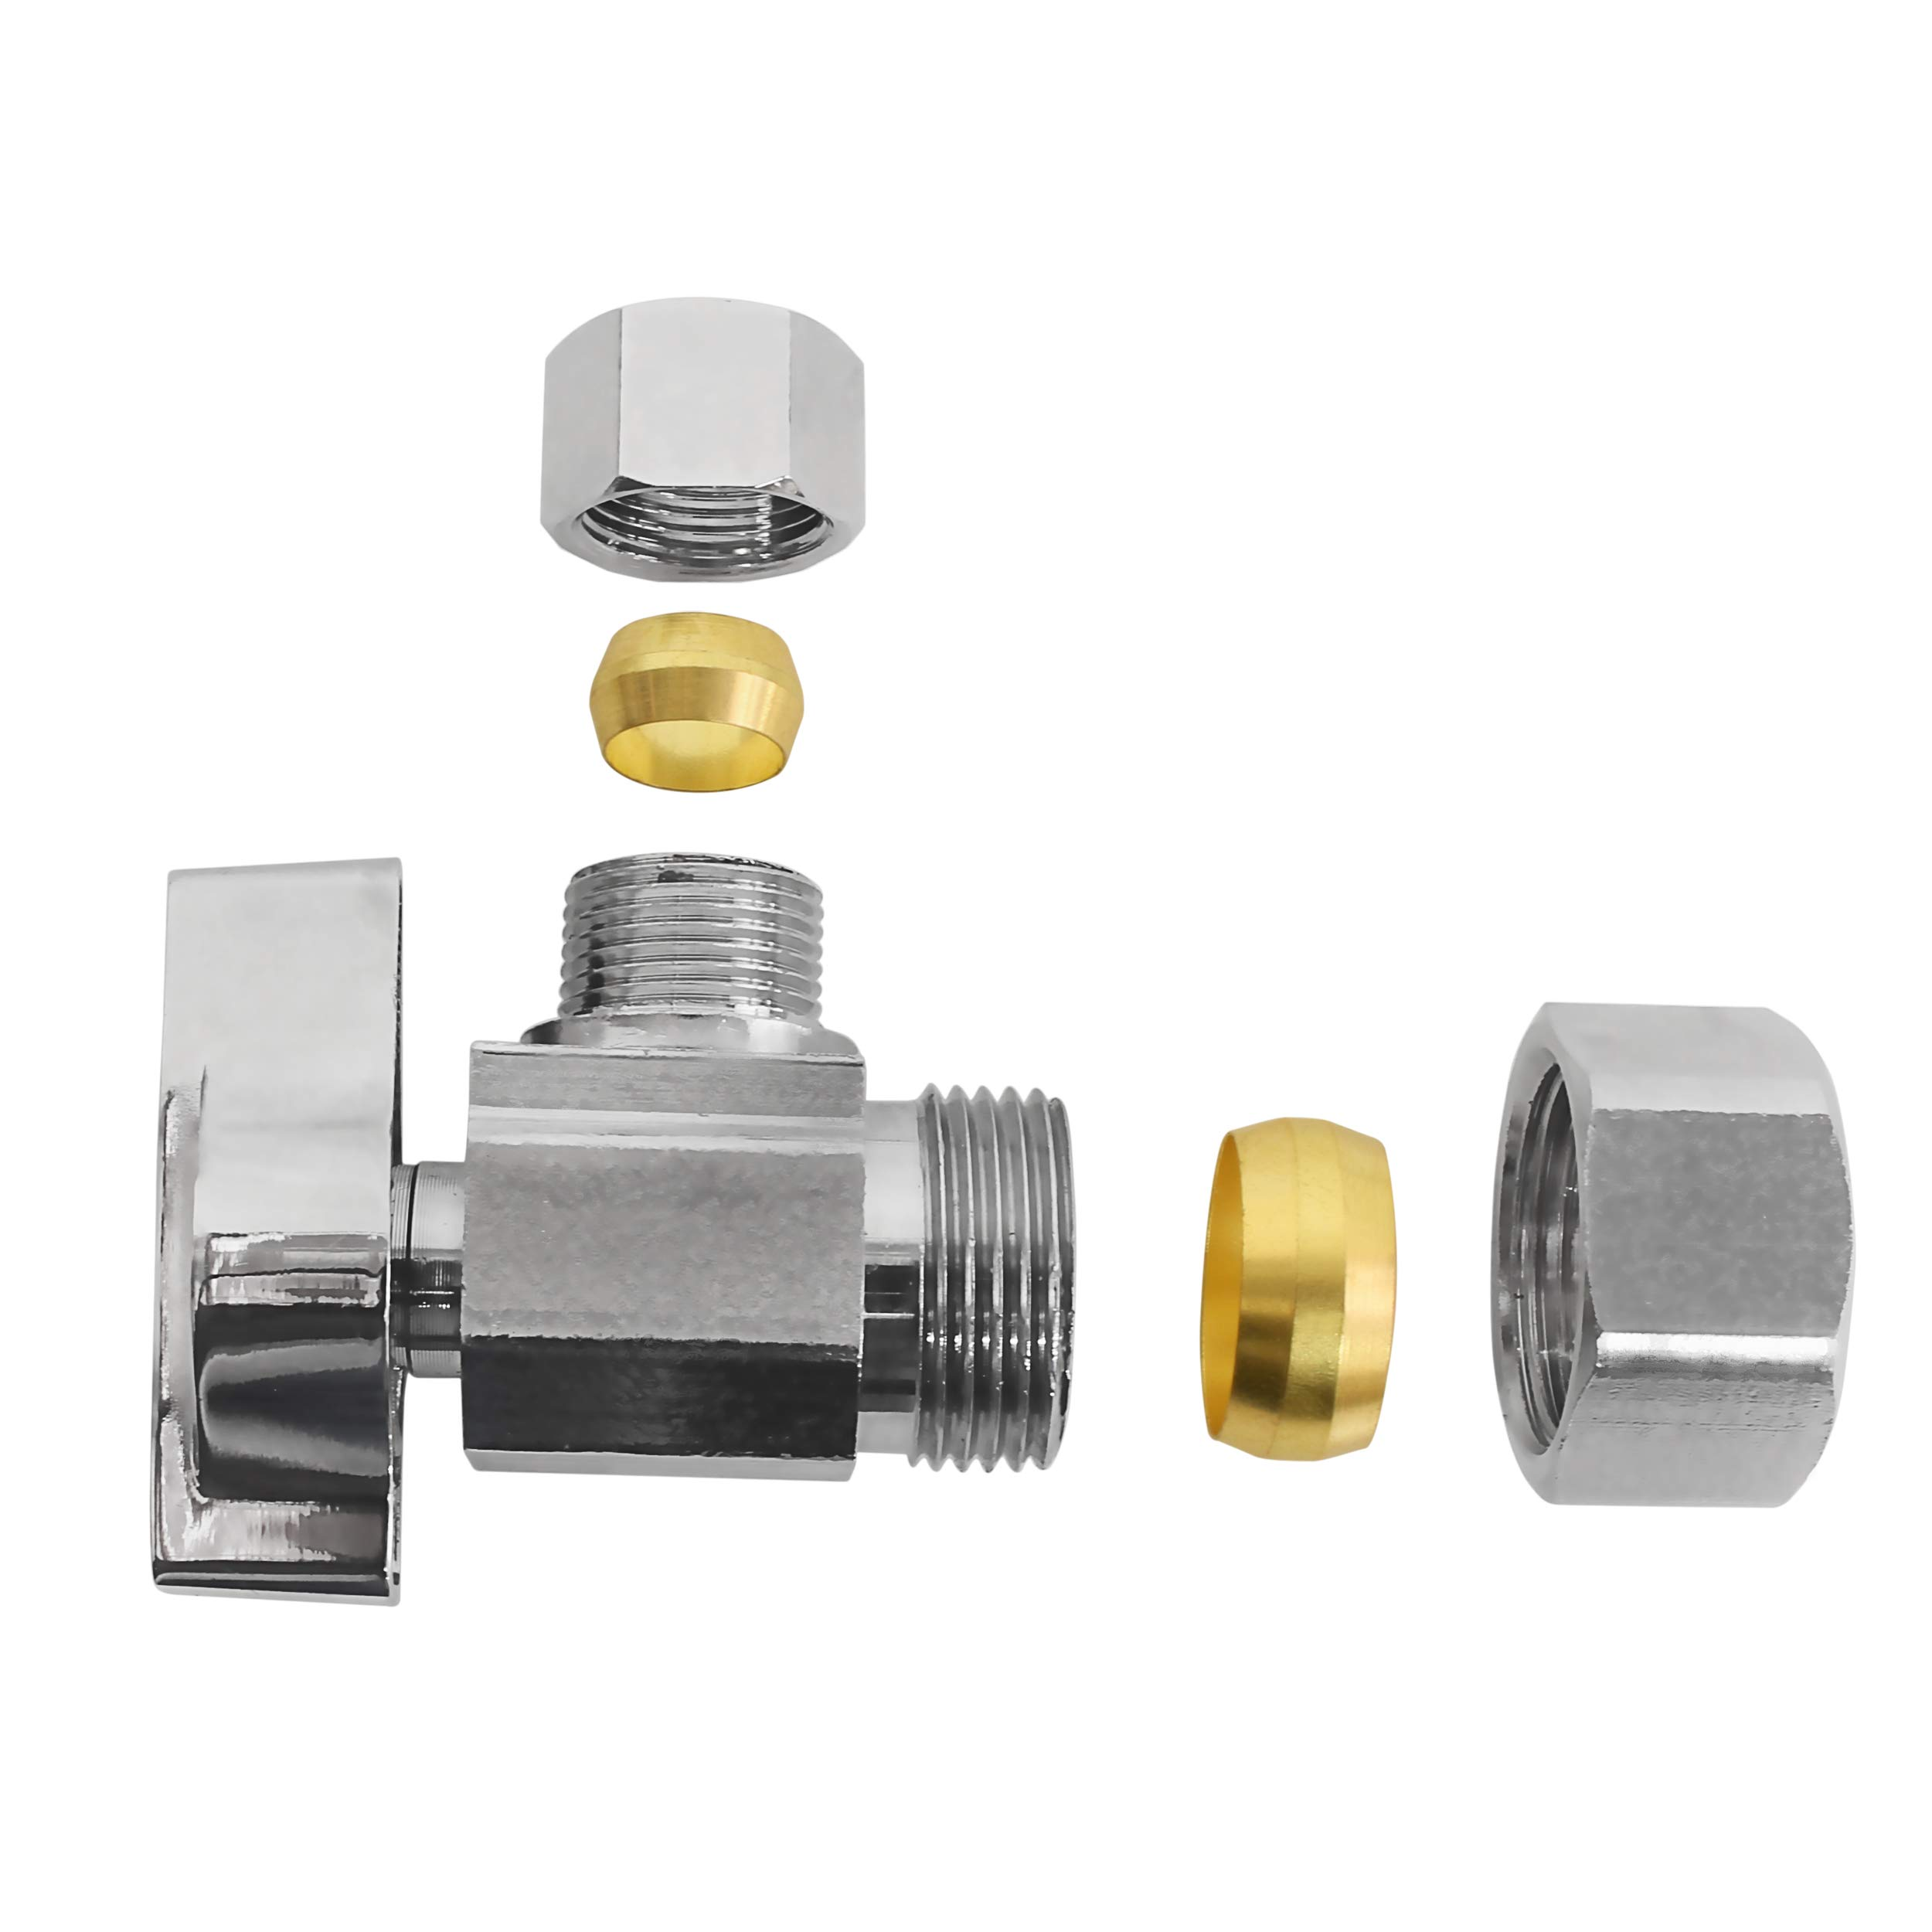 Heavy Duty Squared Body 1/2 in. NOM Comp Inlet x 3/8 in. OD Compression Outlet Chrome Plated Brass 1/4 Turn Angle Stop Valve (5 Pack) by Miiflex (Image #4)